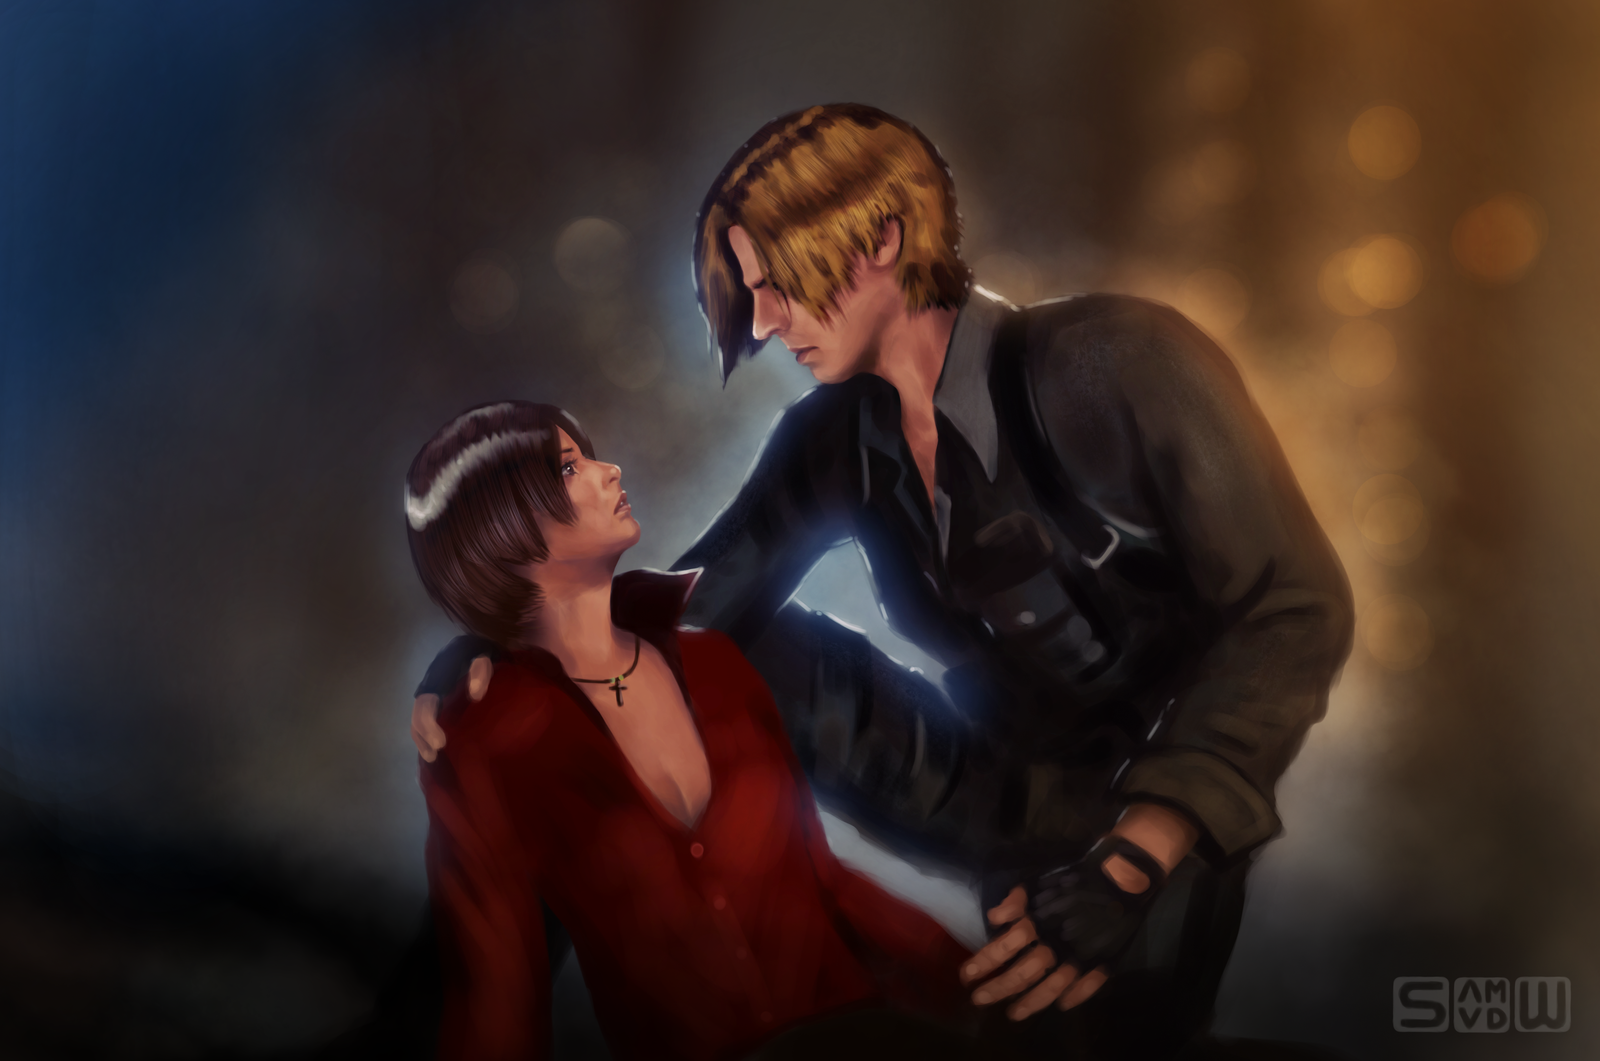 leon and ada relationship quizzes